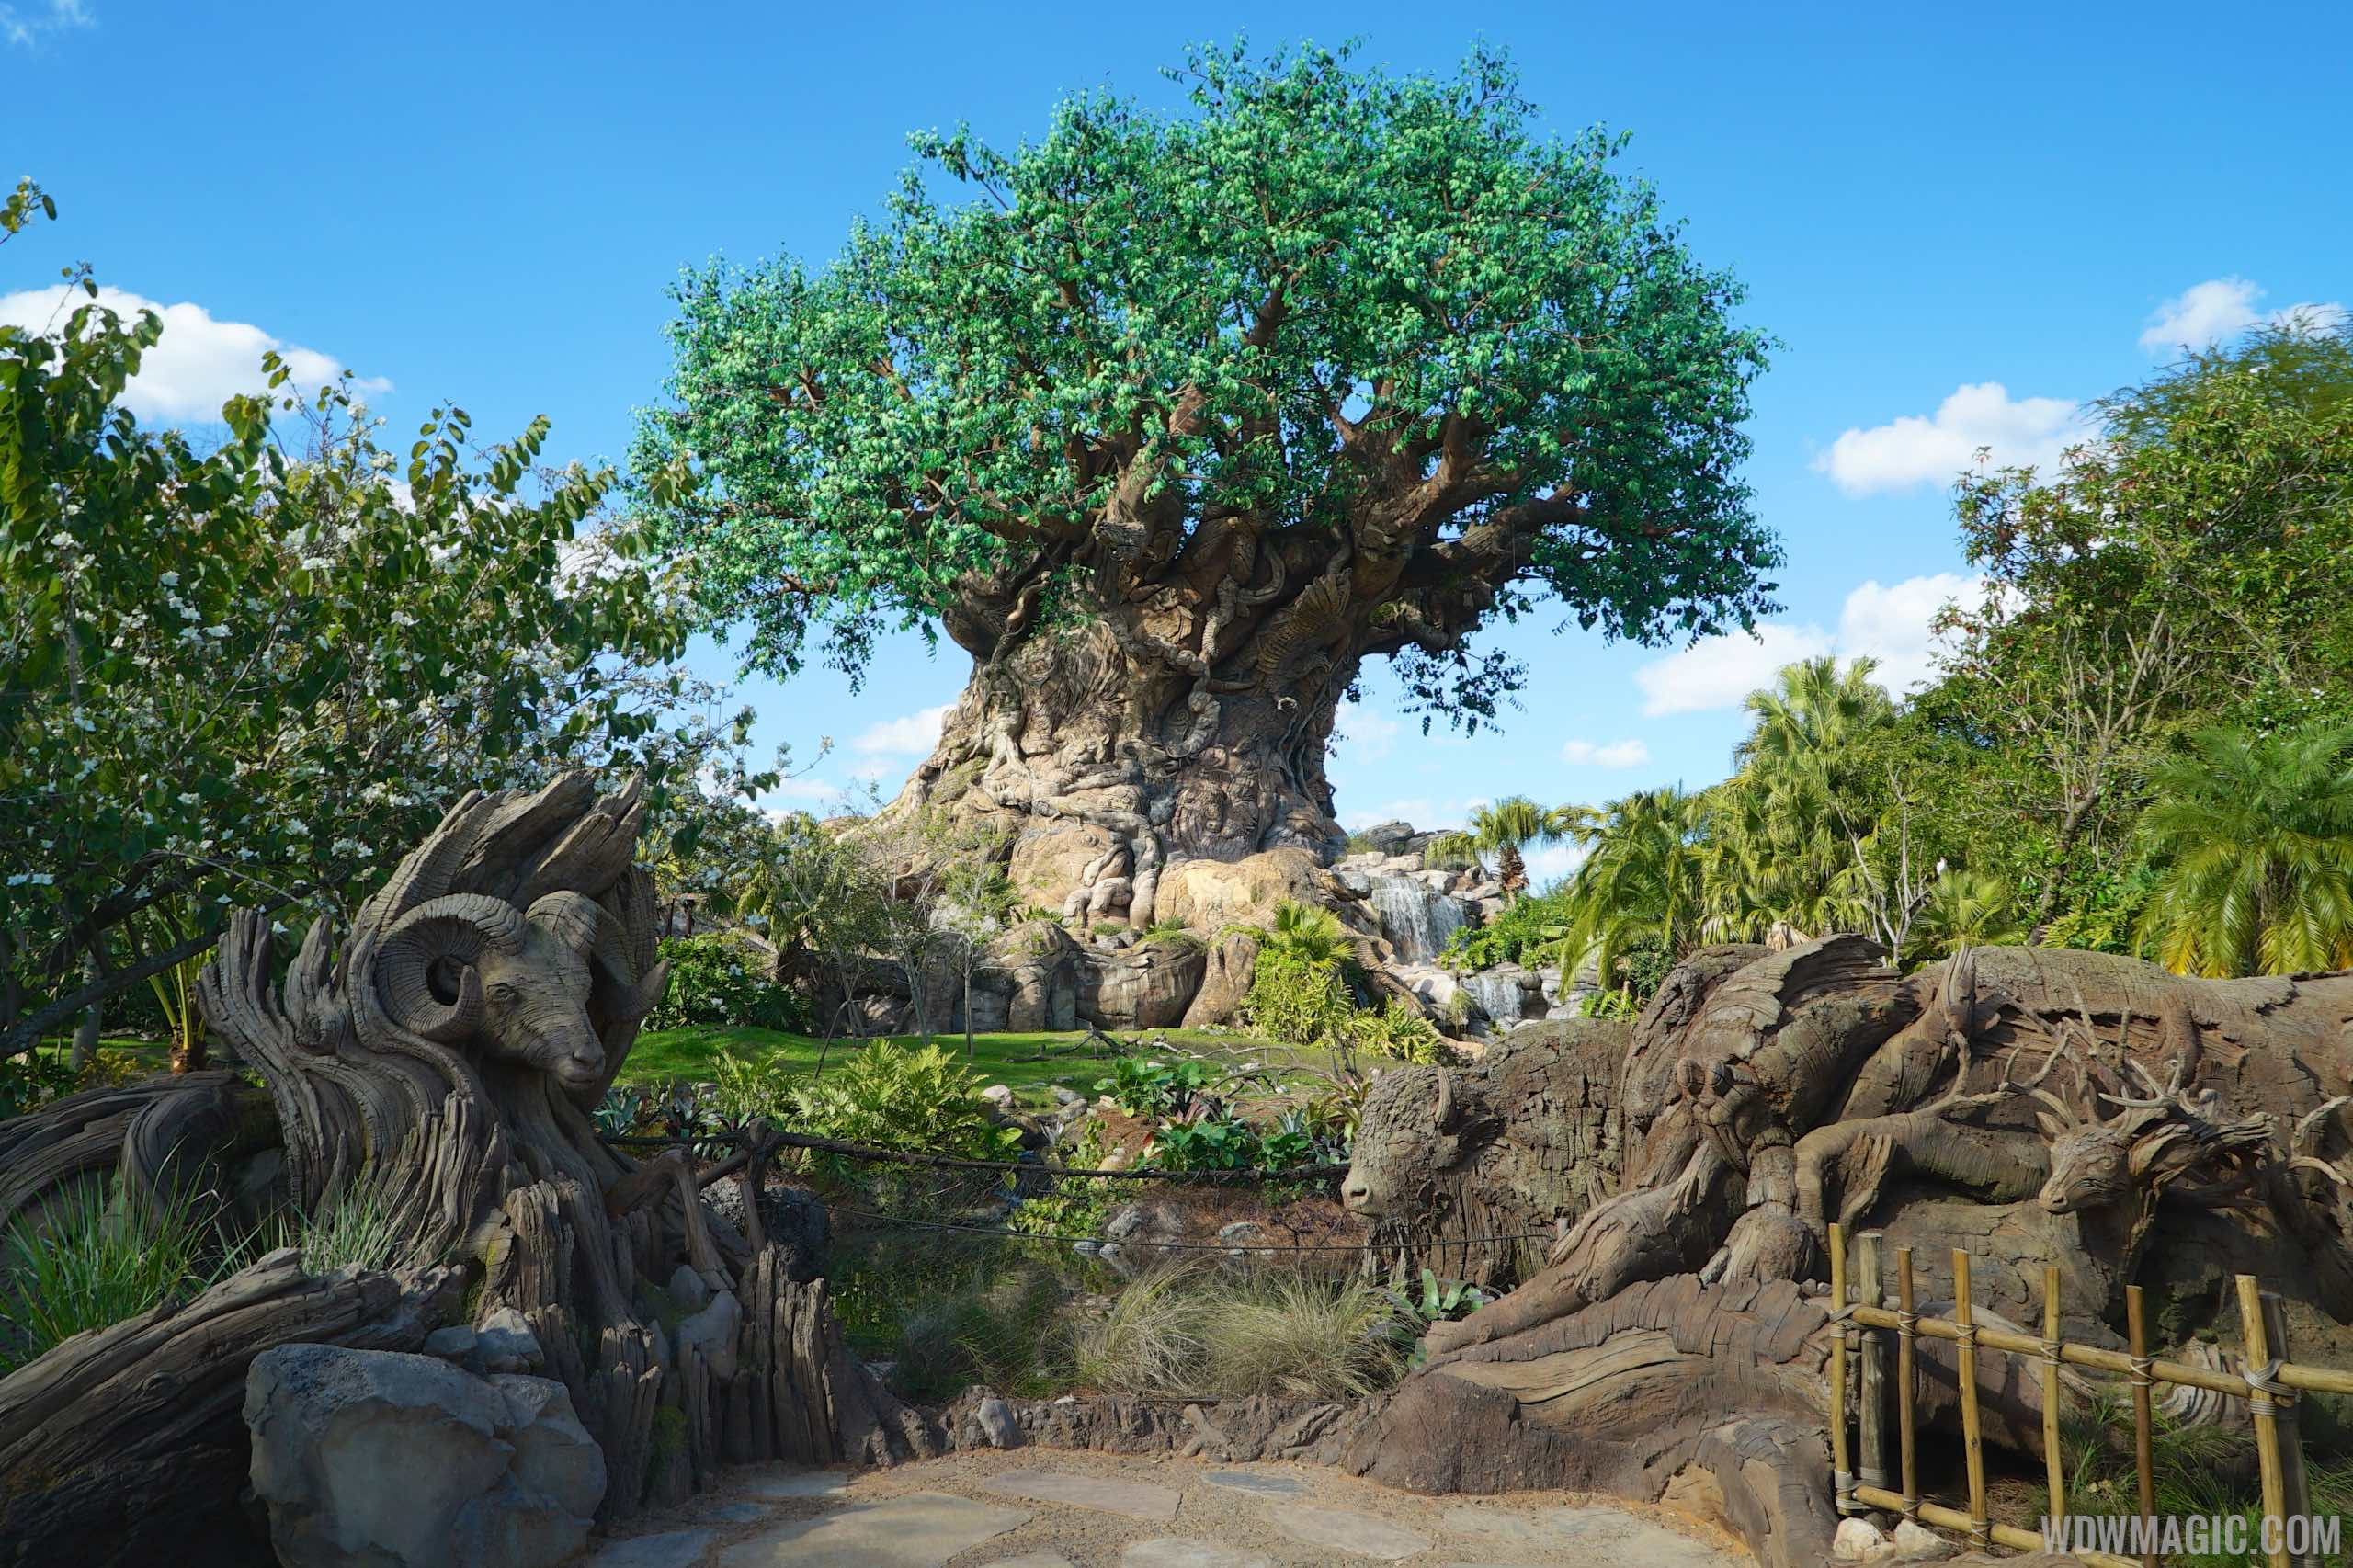 New roots at the Tree of Life